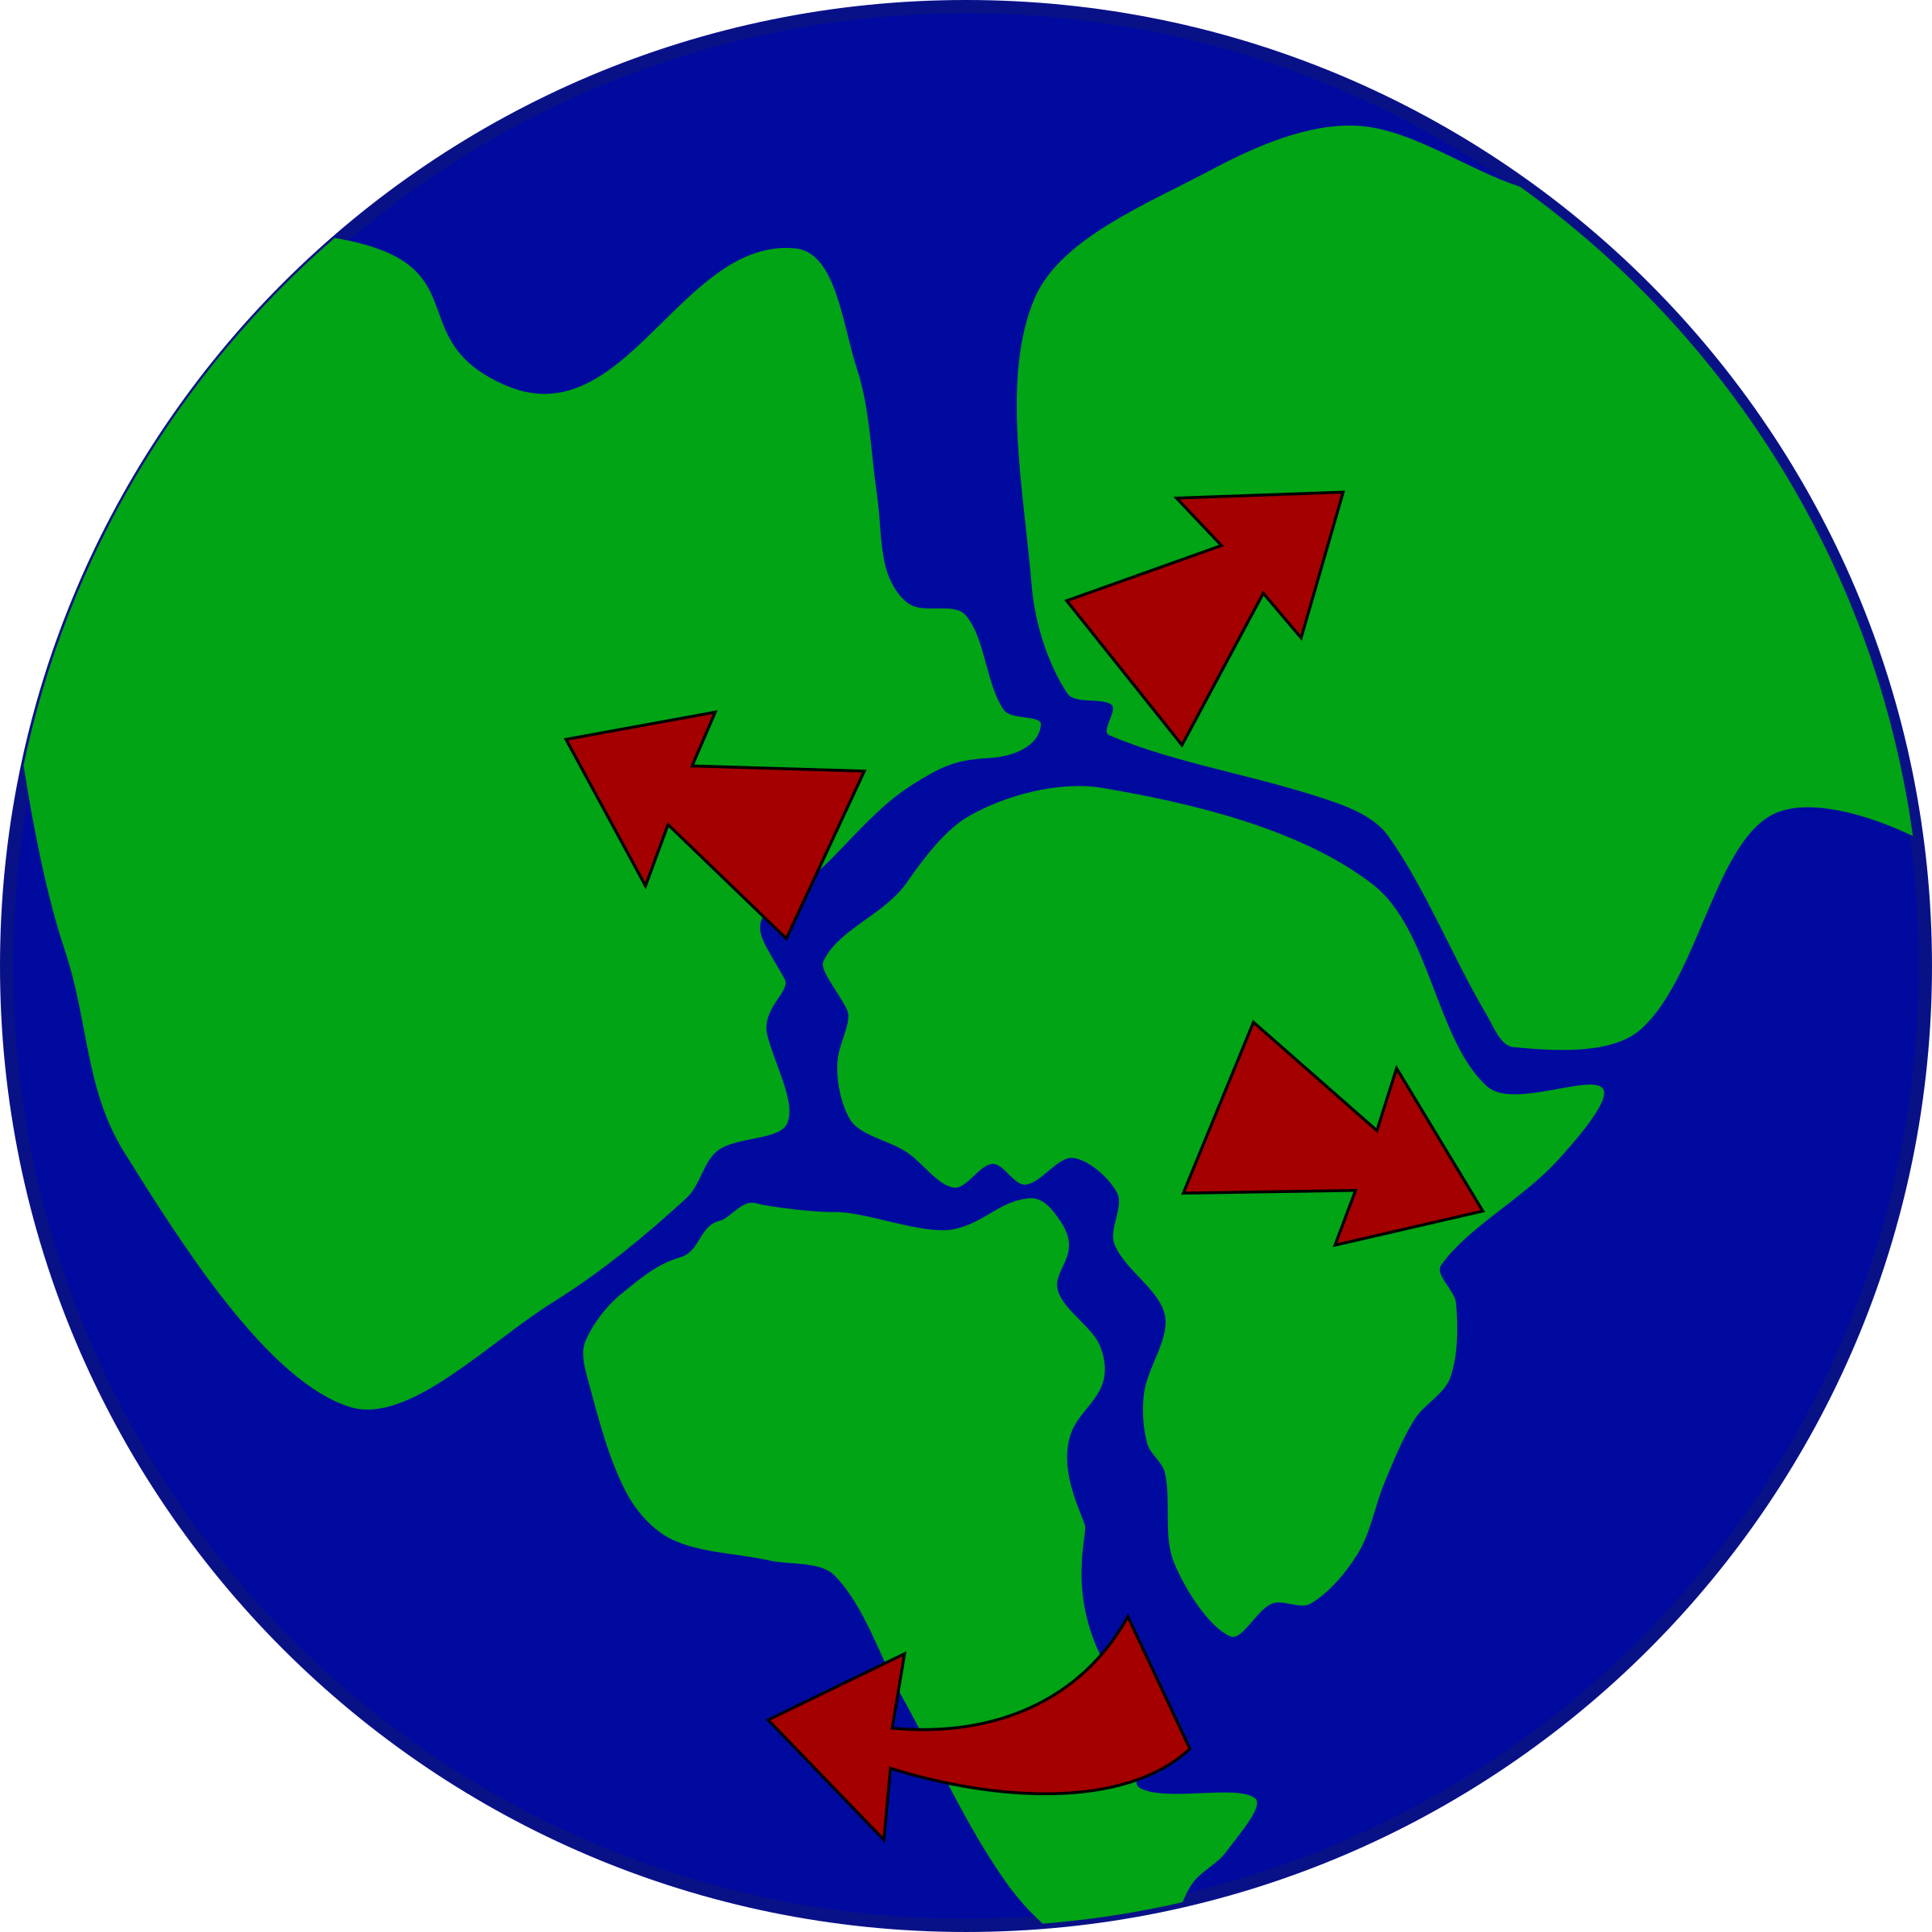 Continent clipart earth's Breaking breaking with continents up